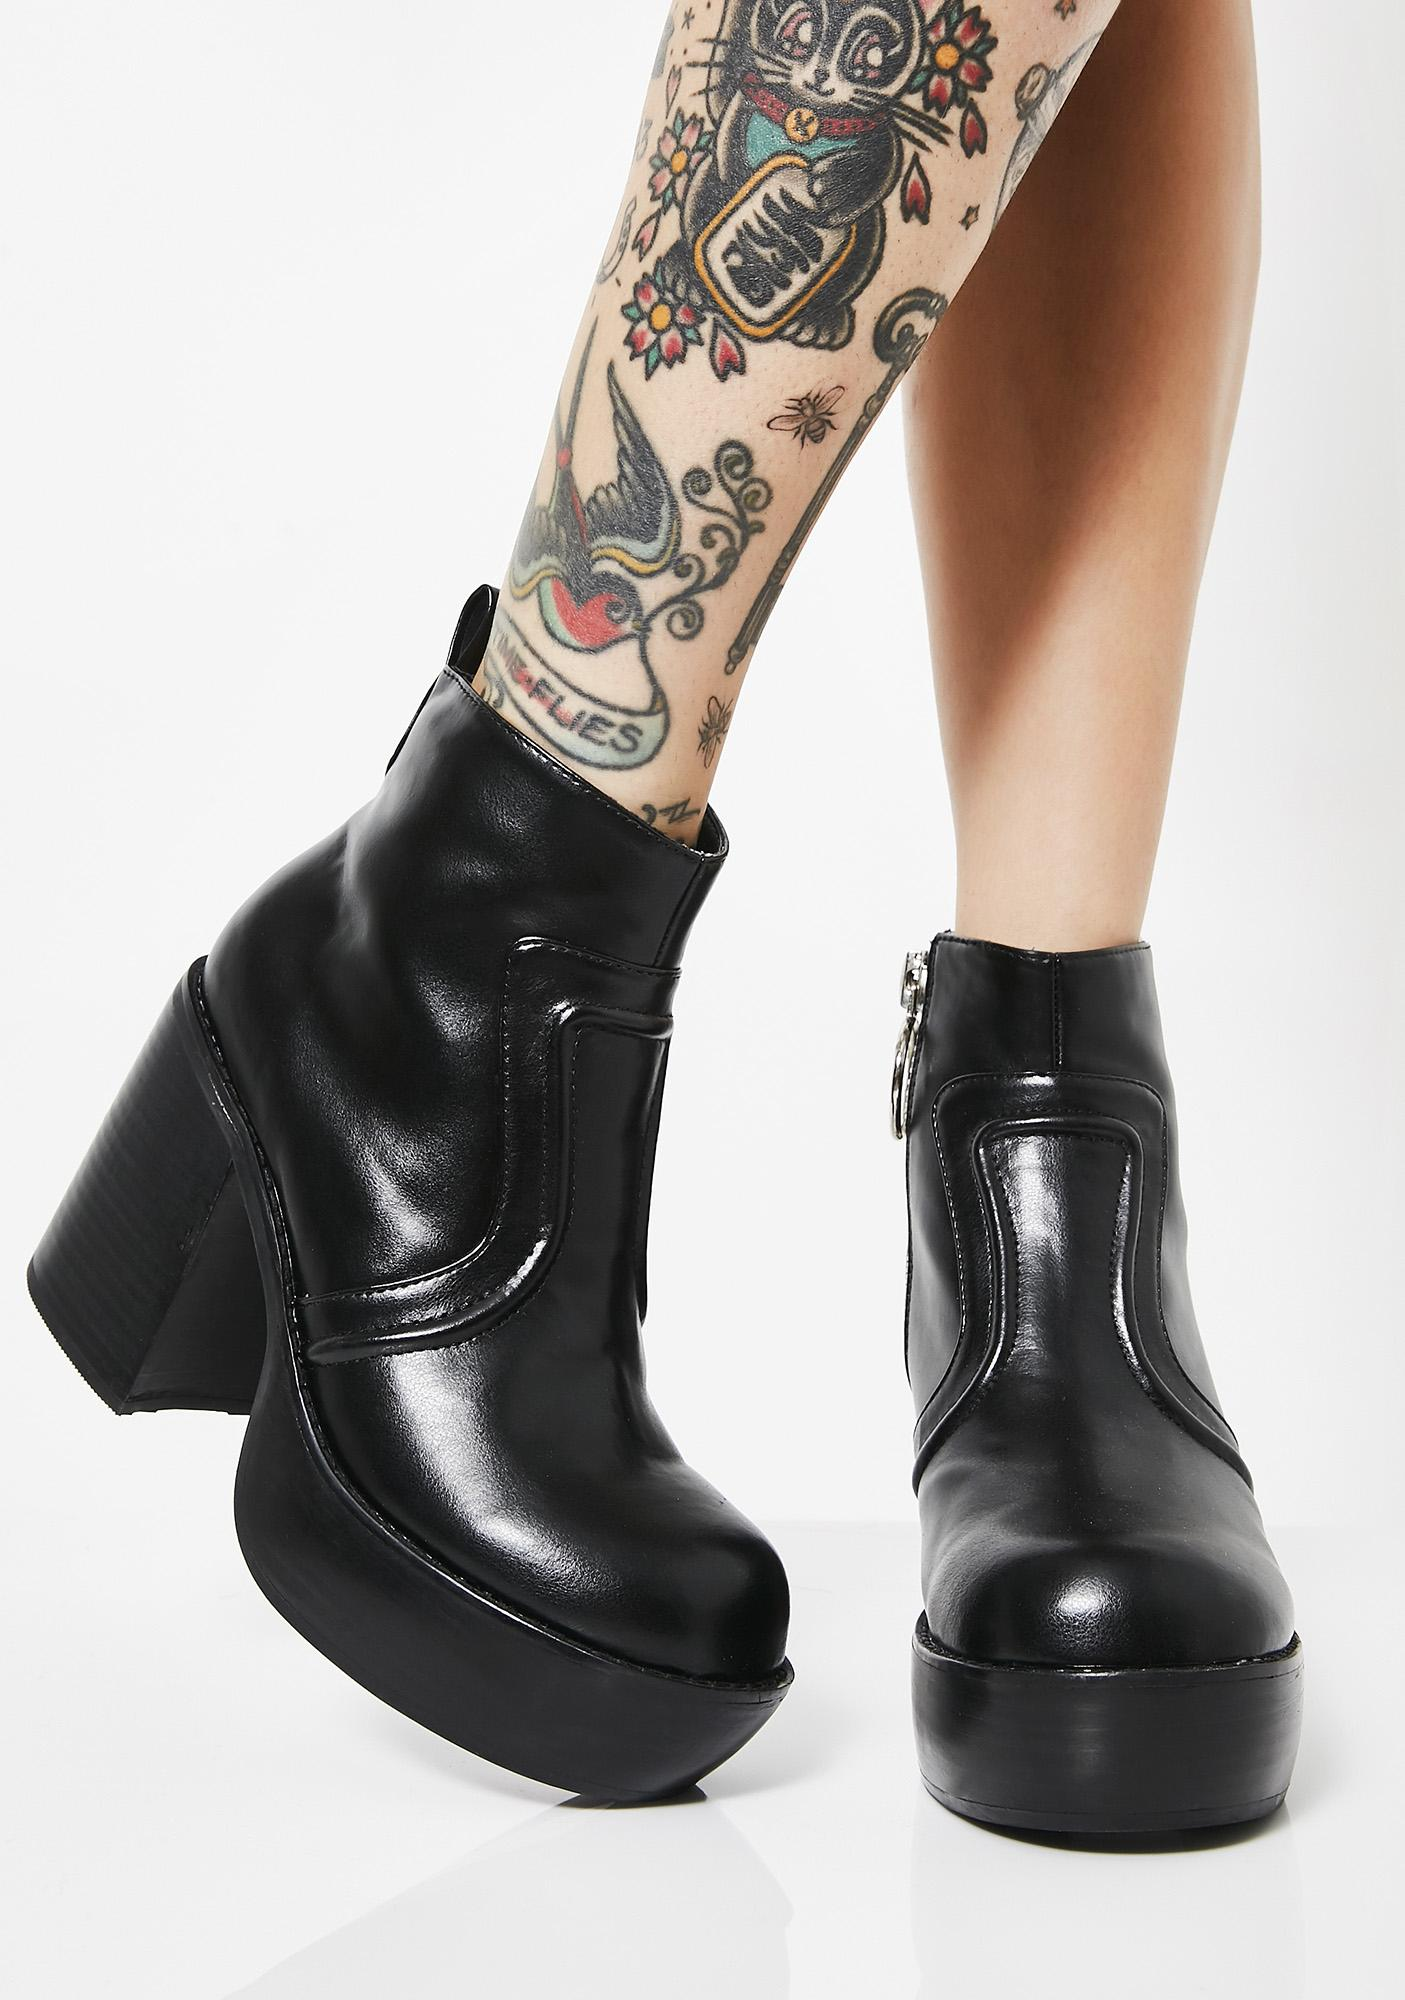 New Coven Platform Boots by Current Mood